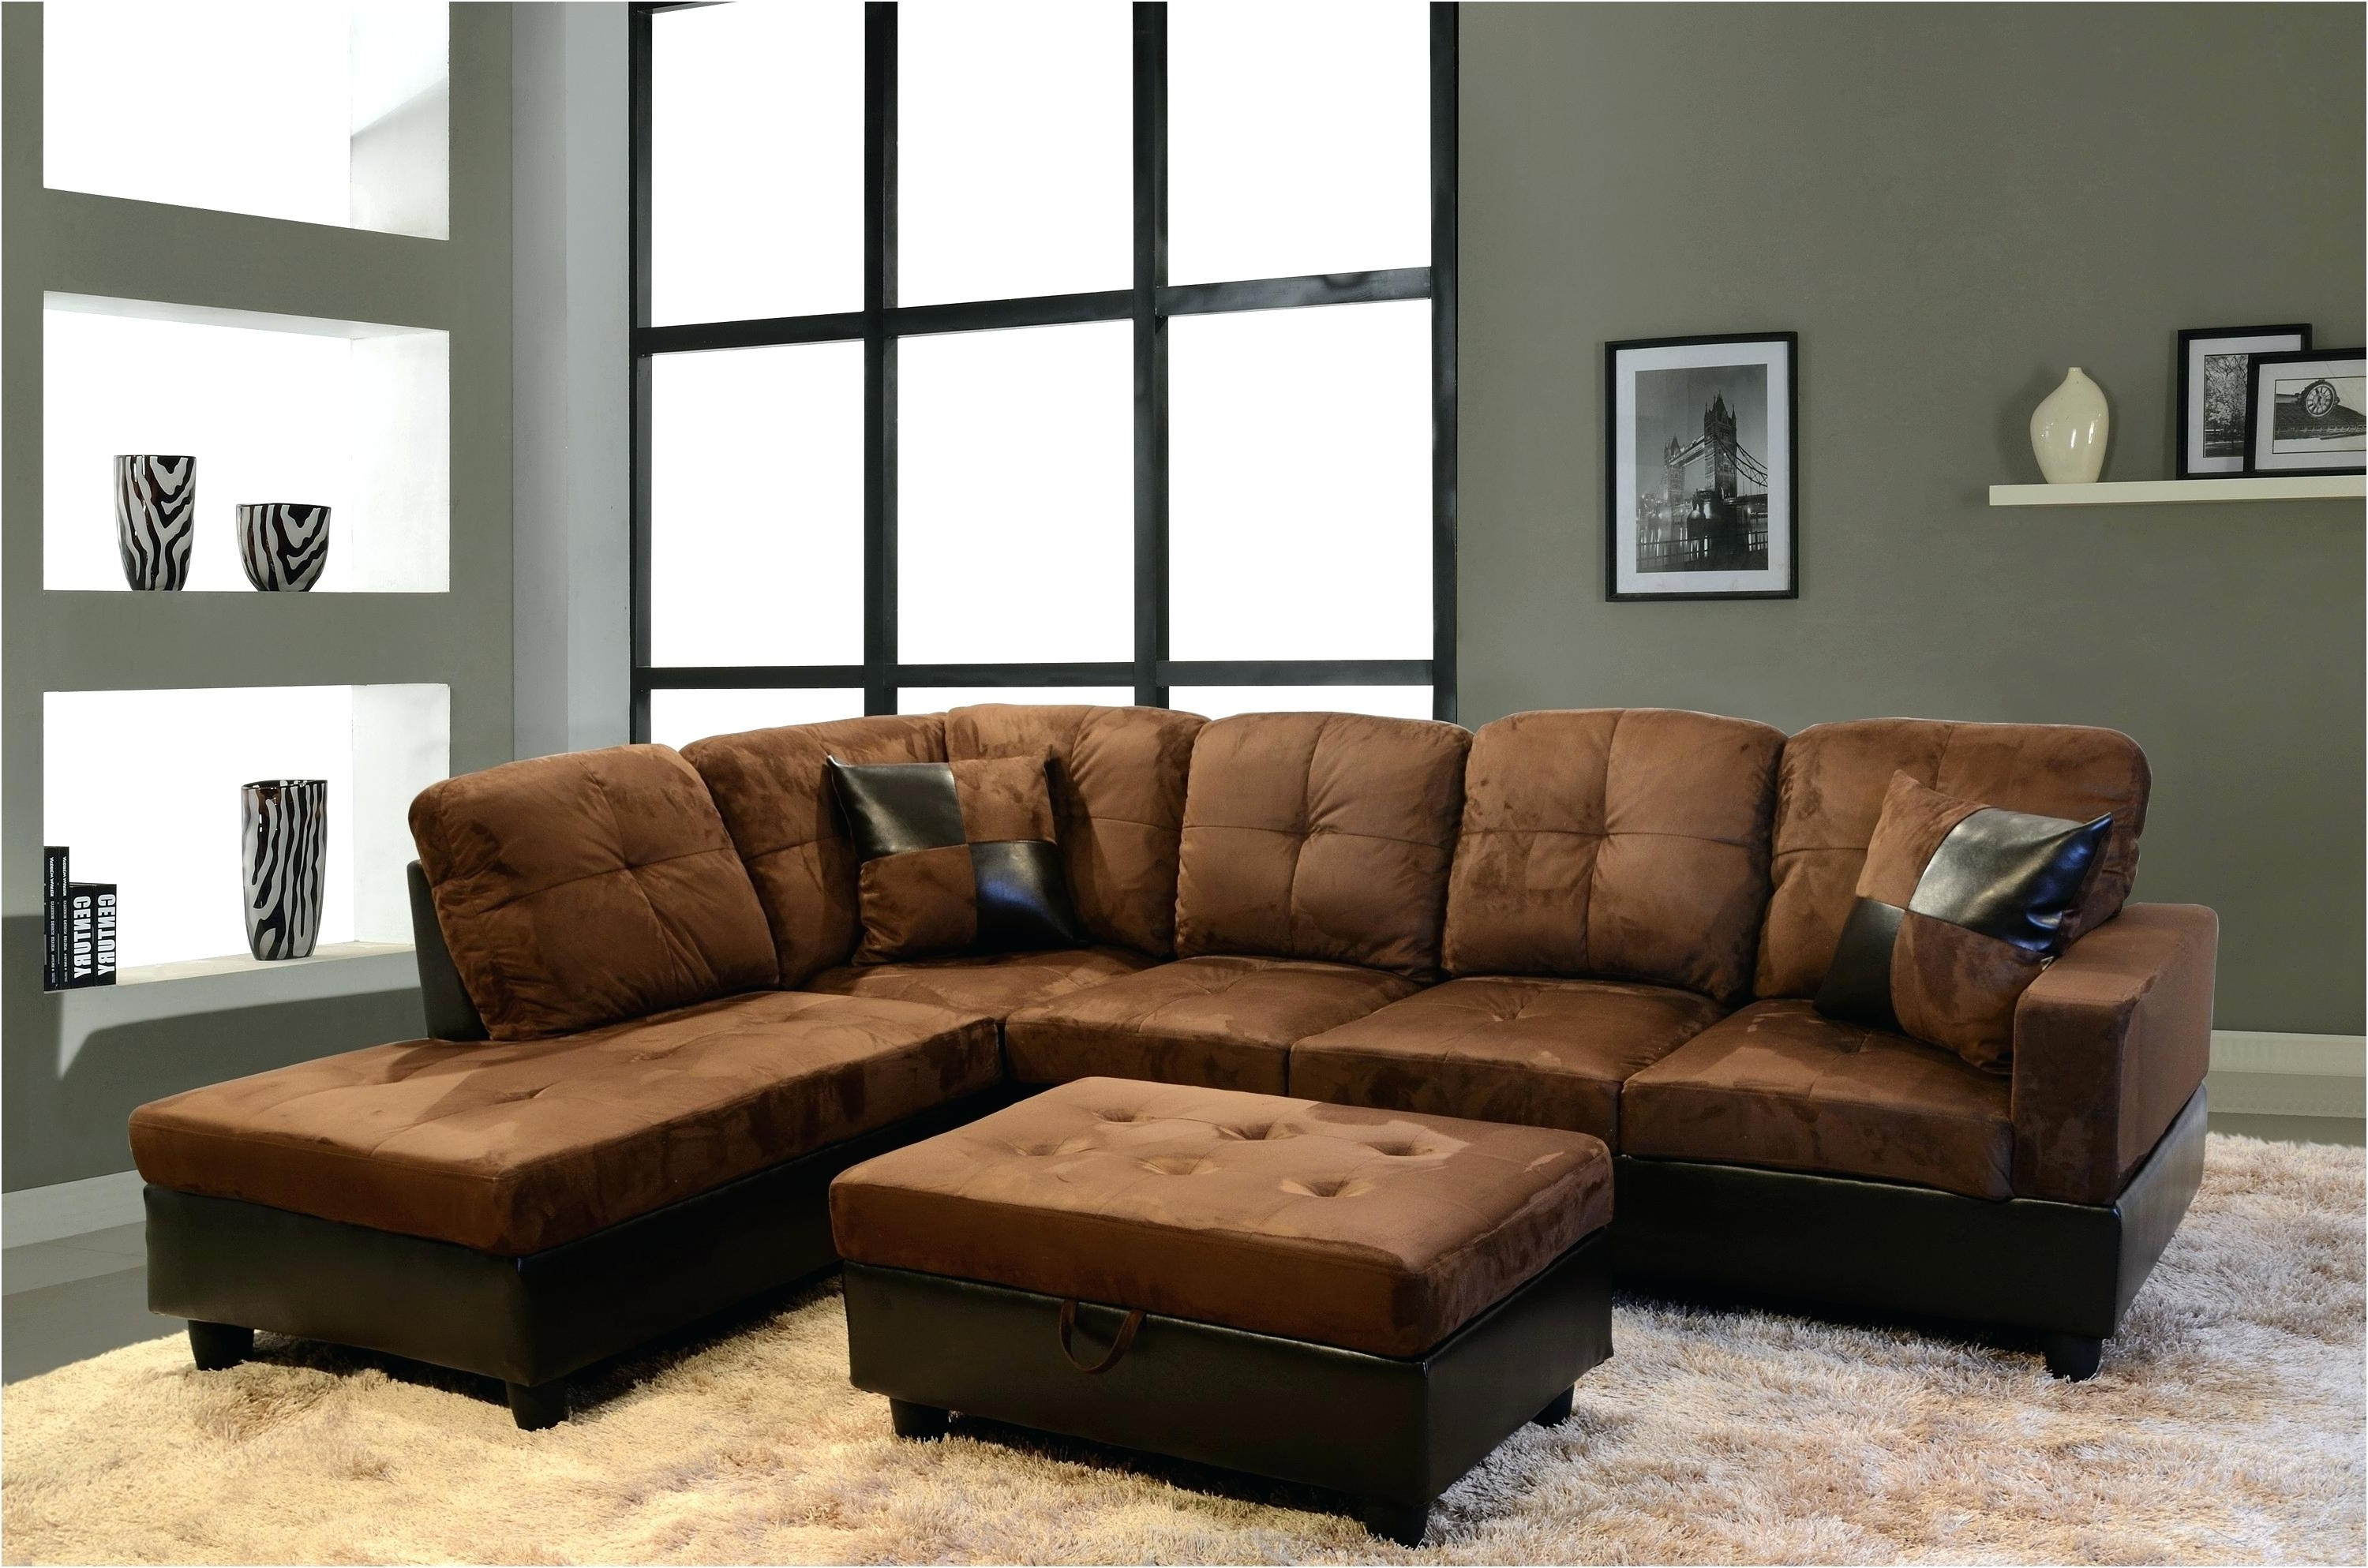 Sectionals For Cheap Sa Sas Sectional Sofas Under 500 Canada Sale With Current Canada Sale Sectional Sofas (View 7 of 20)